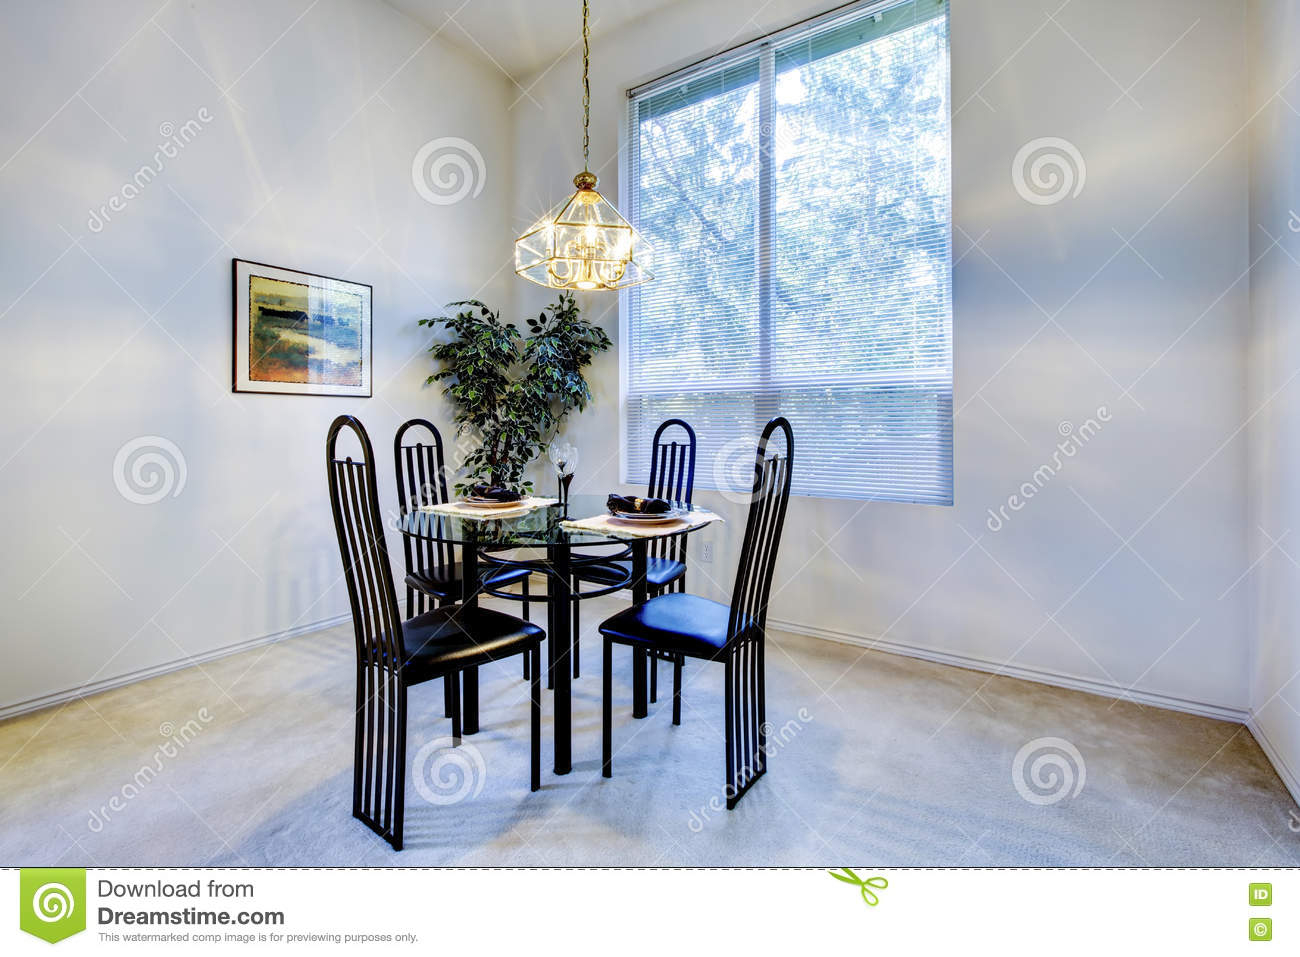 Cozy Dining Space: Small And Cozy Dining Room With Black Table Chair Set